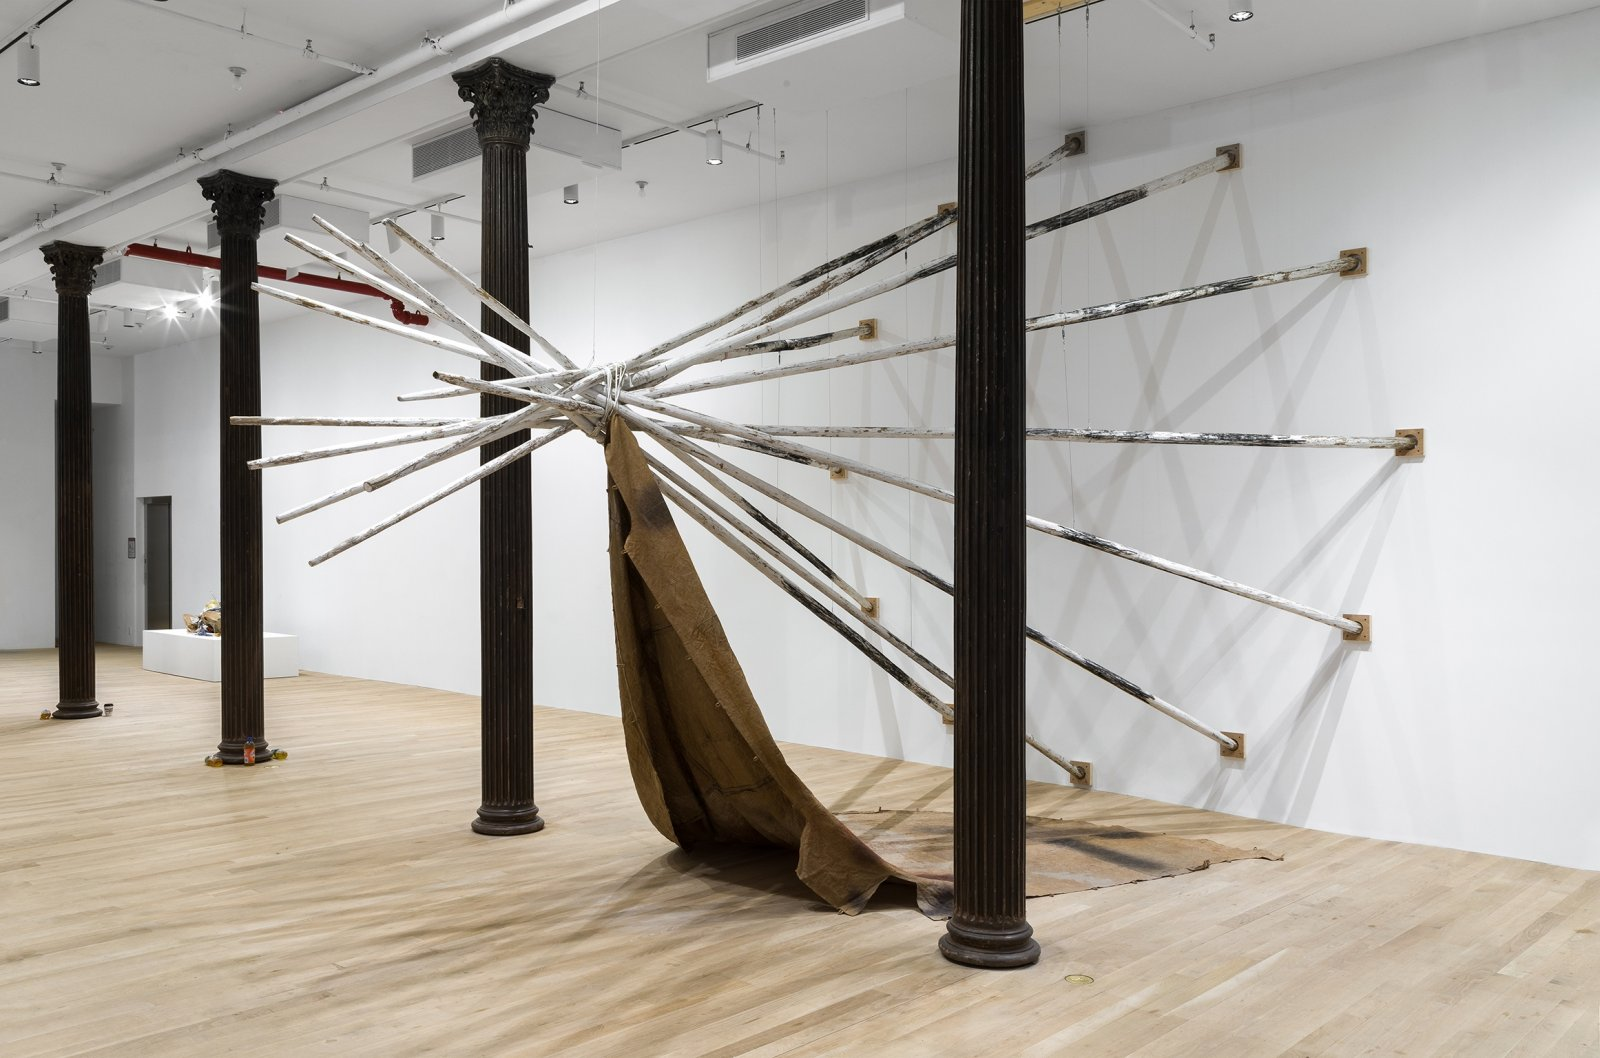 Duane Linklater, dislodgevanishskinground, 2019, 12 teepee poles, steel cable, white paint, charcoal, rope, digital print on linen, black tea, blueberry extract, sumac, charcoal, 220 x 174 x 174 in. (559 x 442 x 442 cm). Installation view, Artists Space, New York, USA, 2019